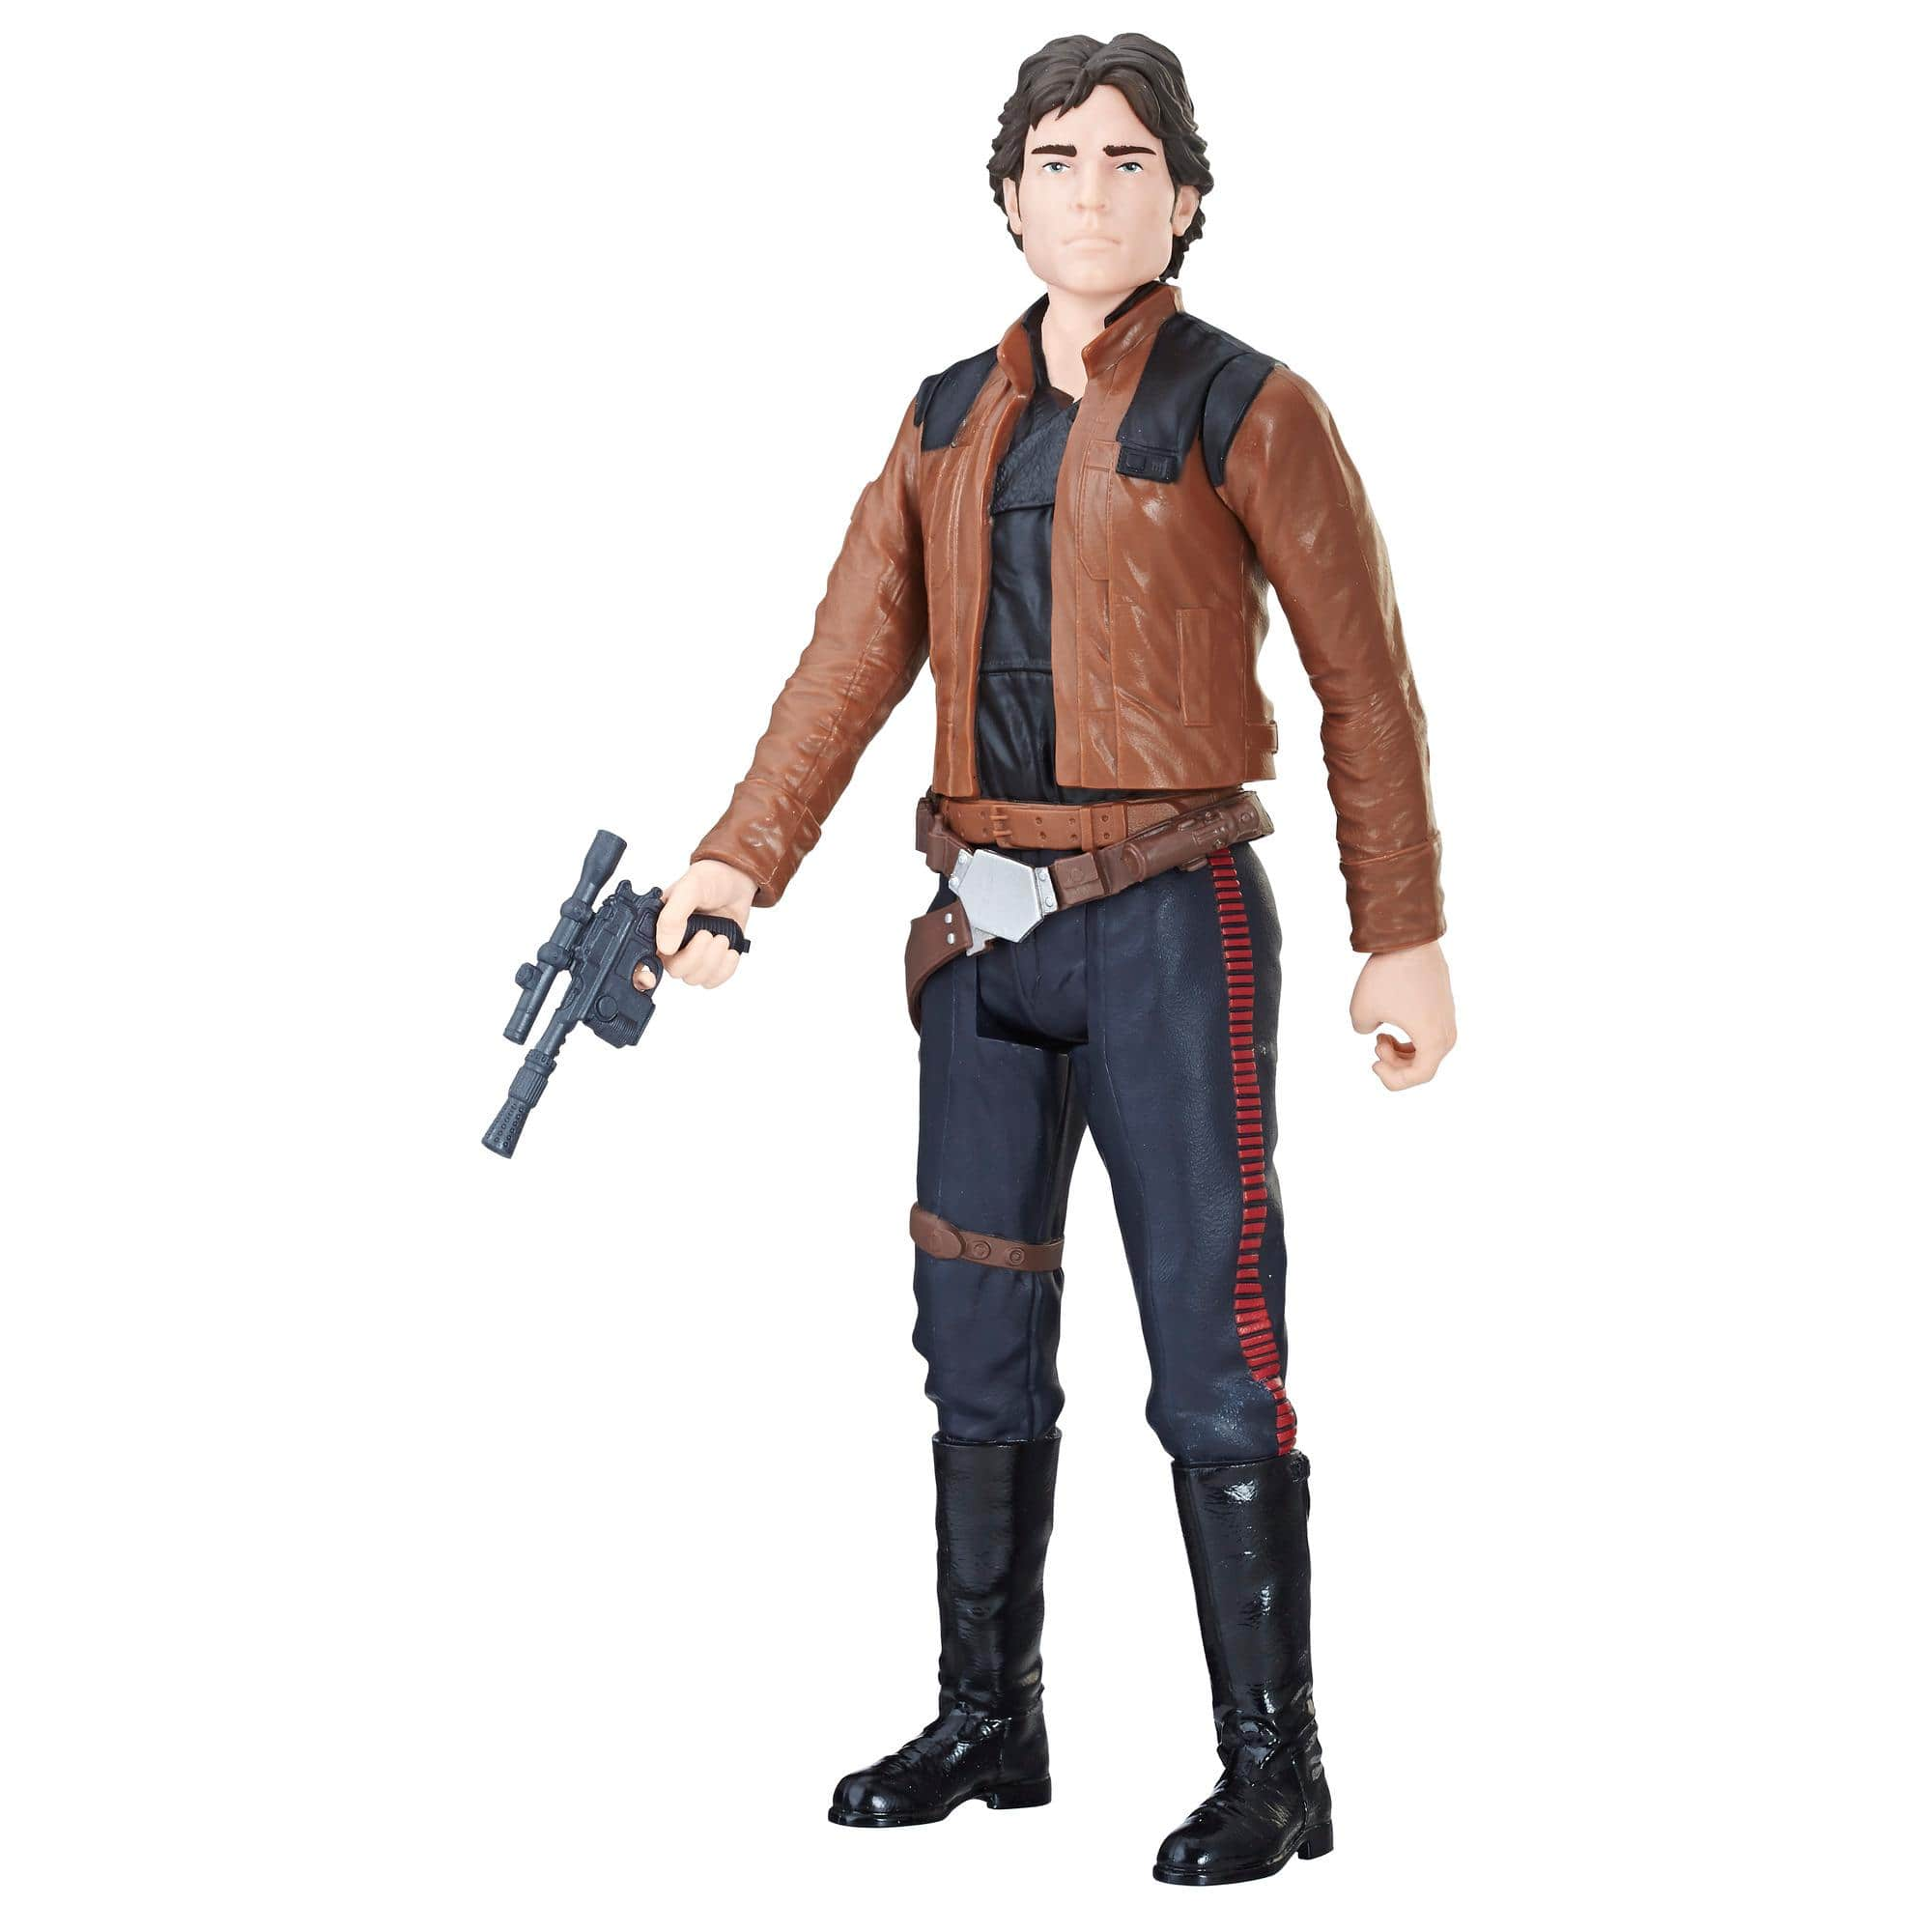 Star Wars Vintage Collection, Black Series, New Solo Toys & More - 20% off/FS over $49